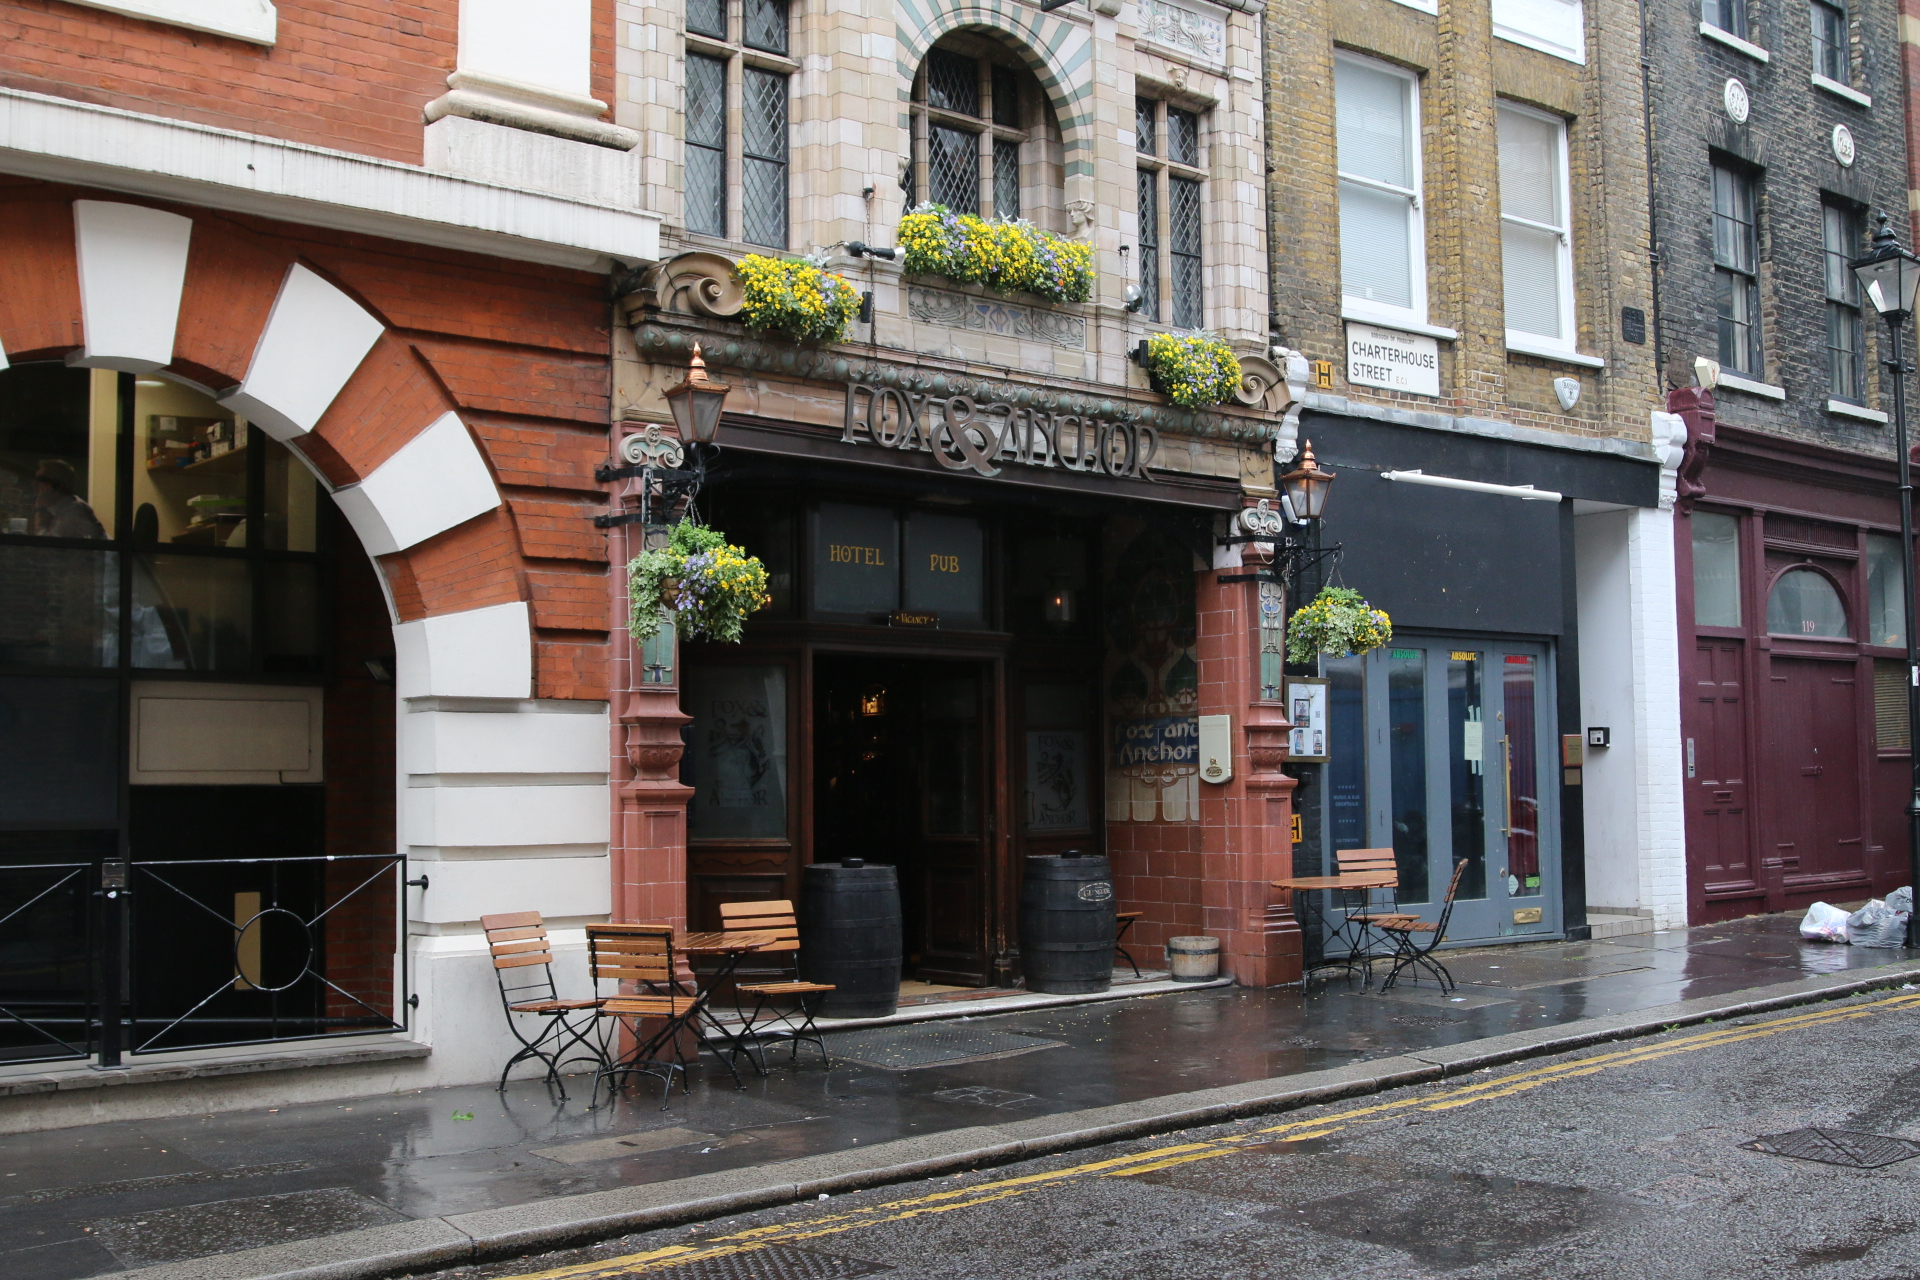 The entrance to Fox & Anchor, tucked away on a side street